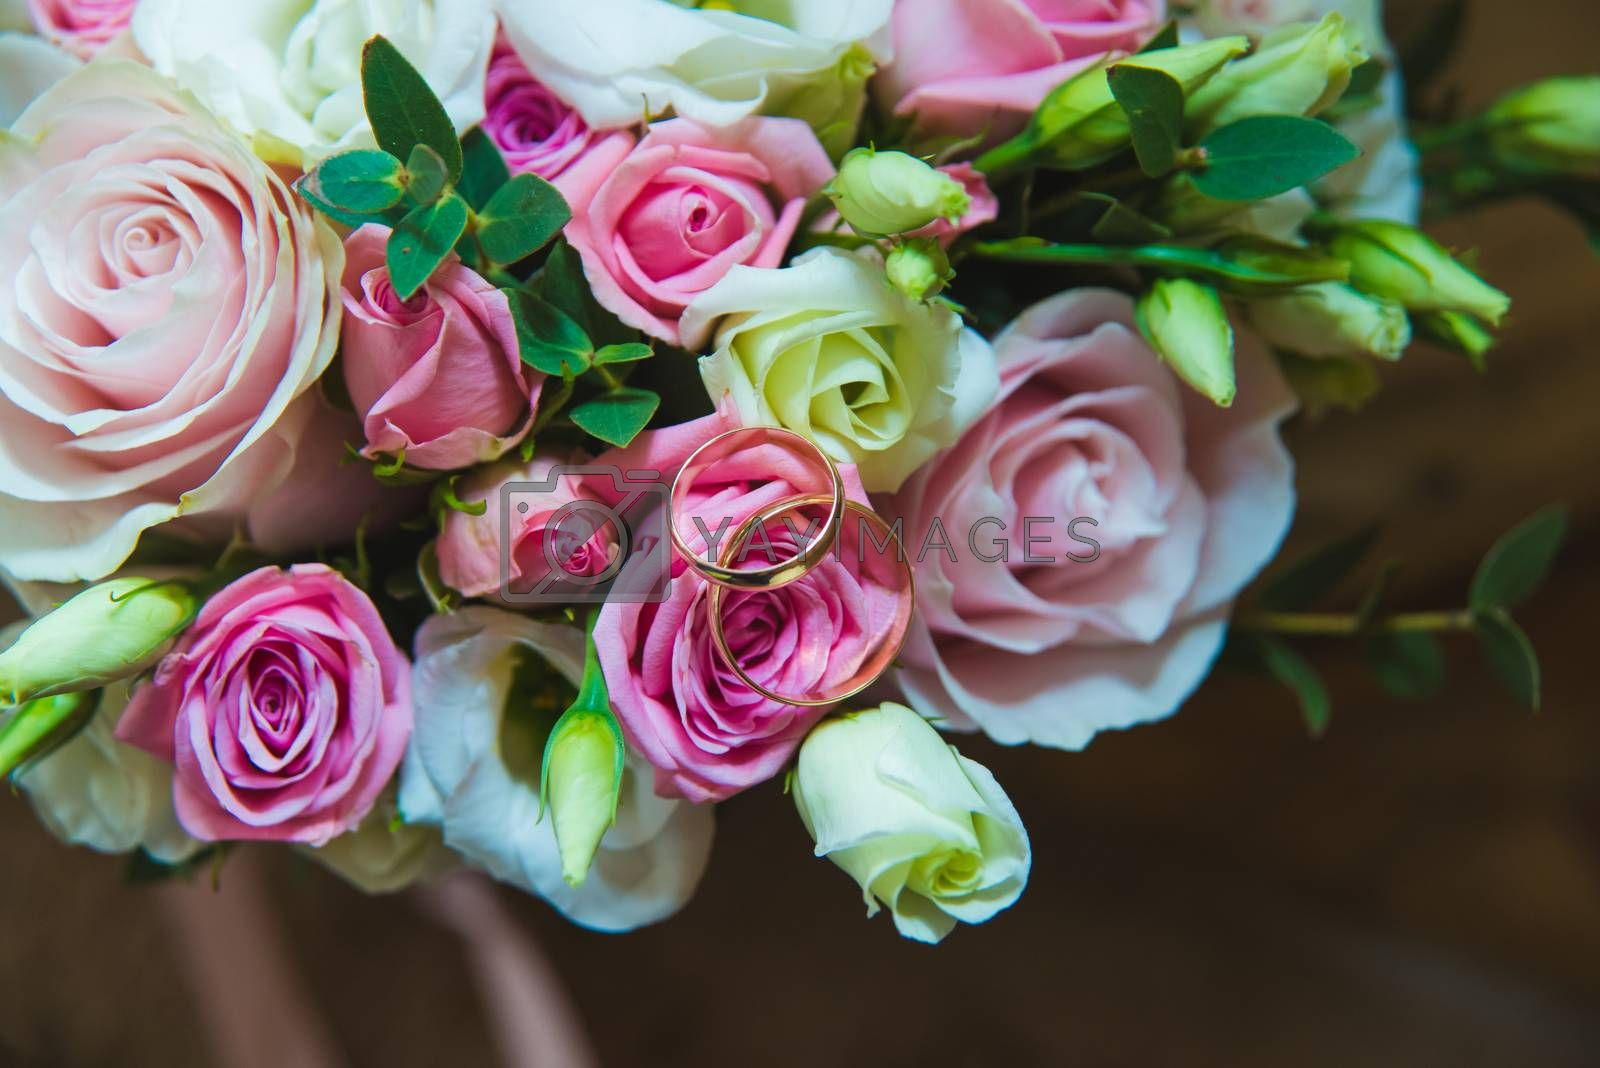 Beautiful delicate wedding bouquet of white roses and wedding rings of the bride and groom. Wedding day.